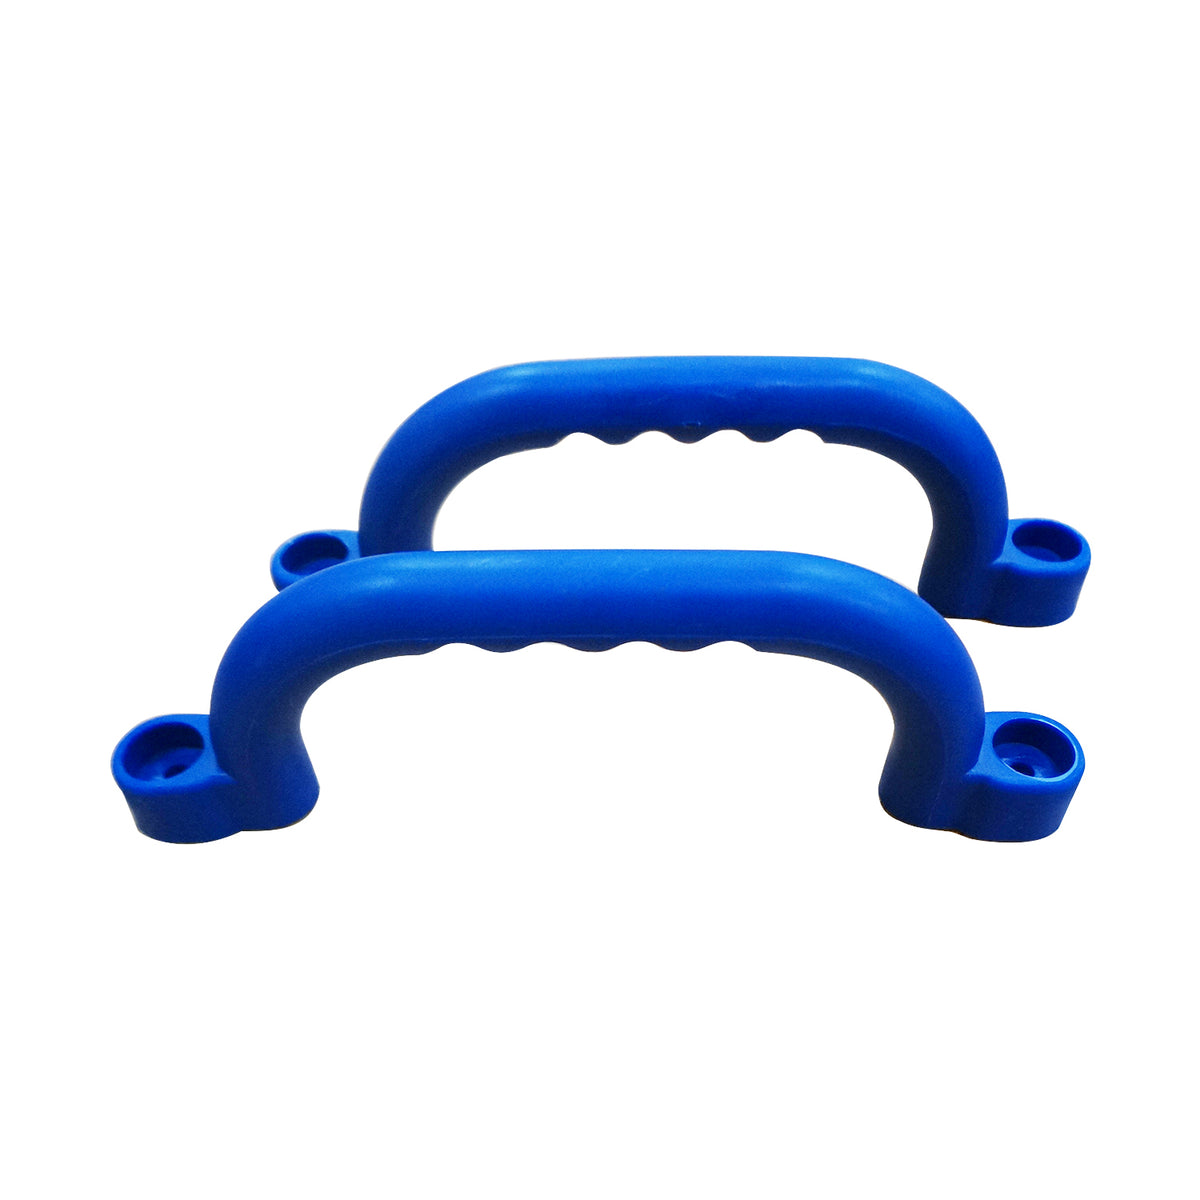 Lifespan Kids Plastic Handle Pair 235mm - Blue